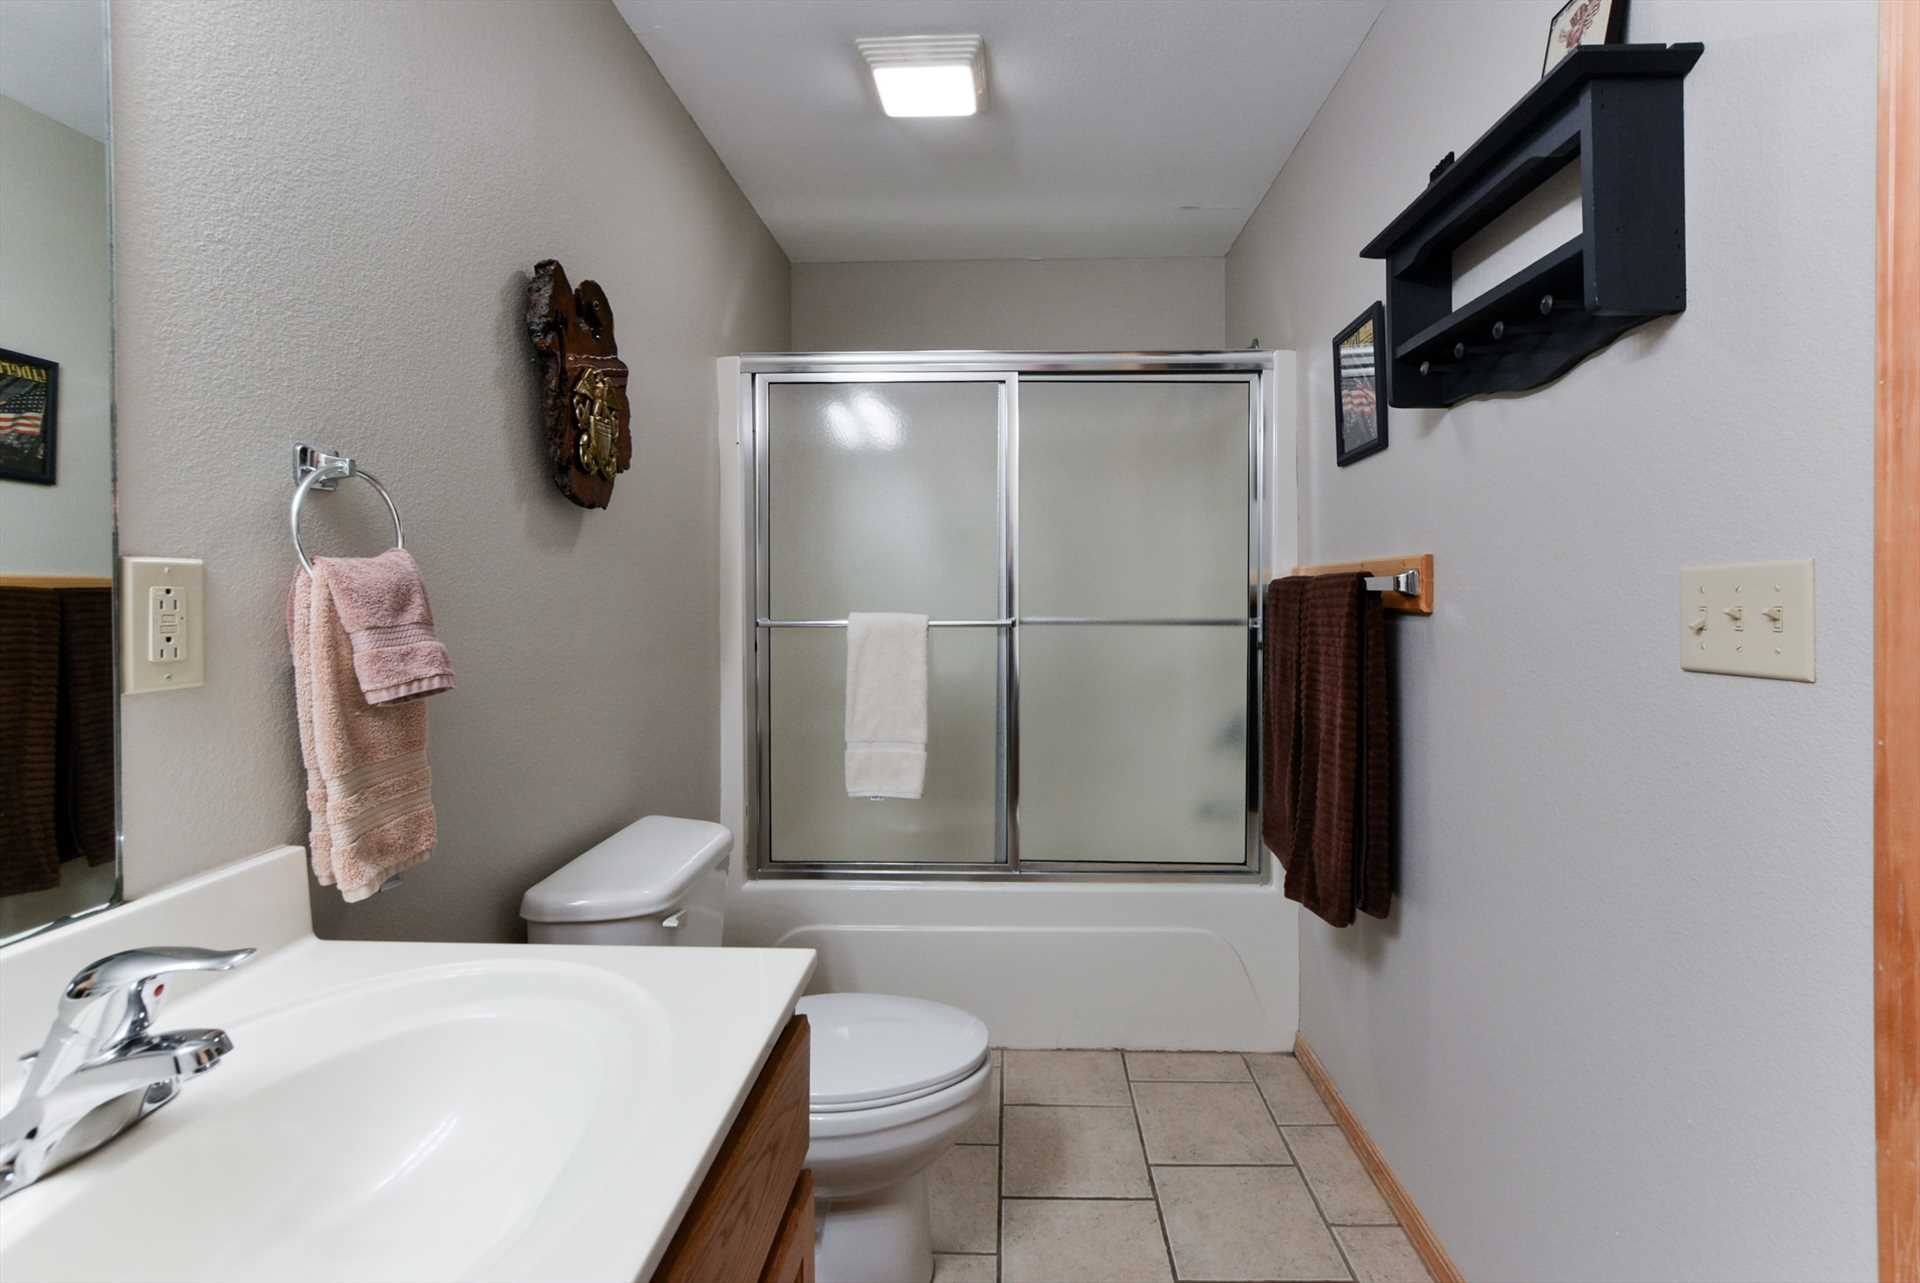 This bathroom includes a combination shower/tub.